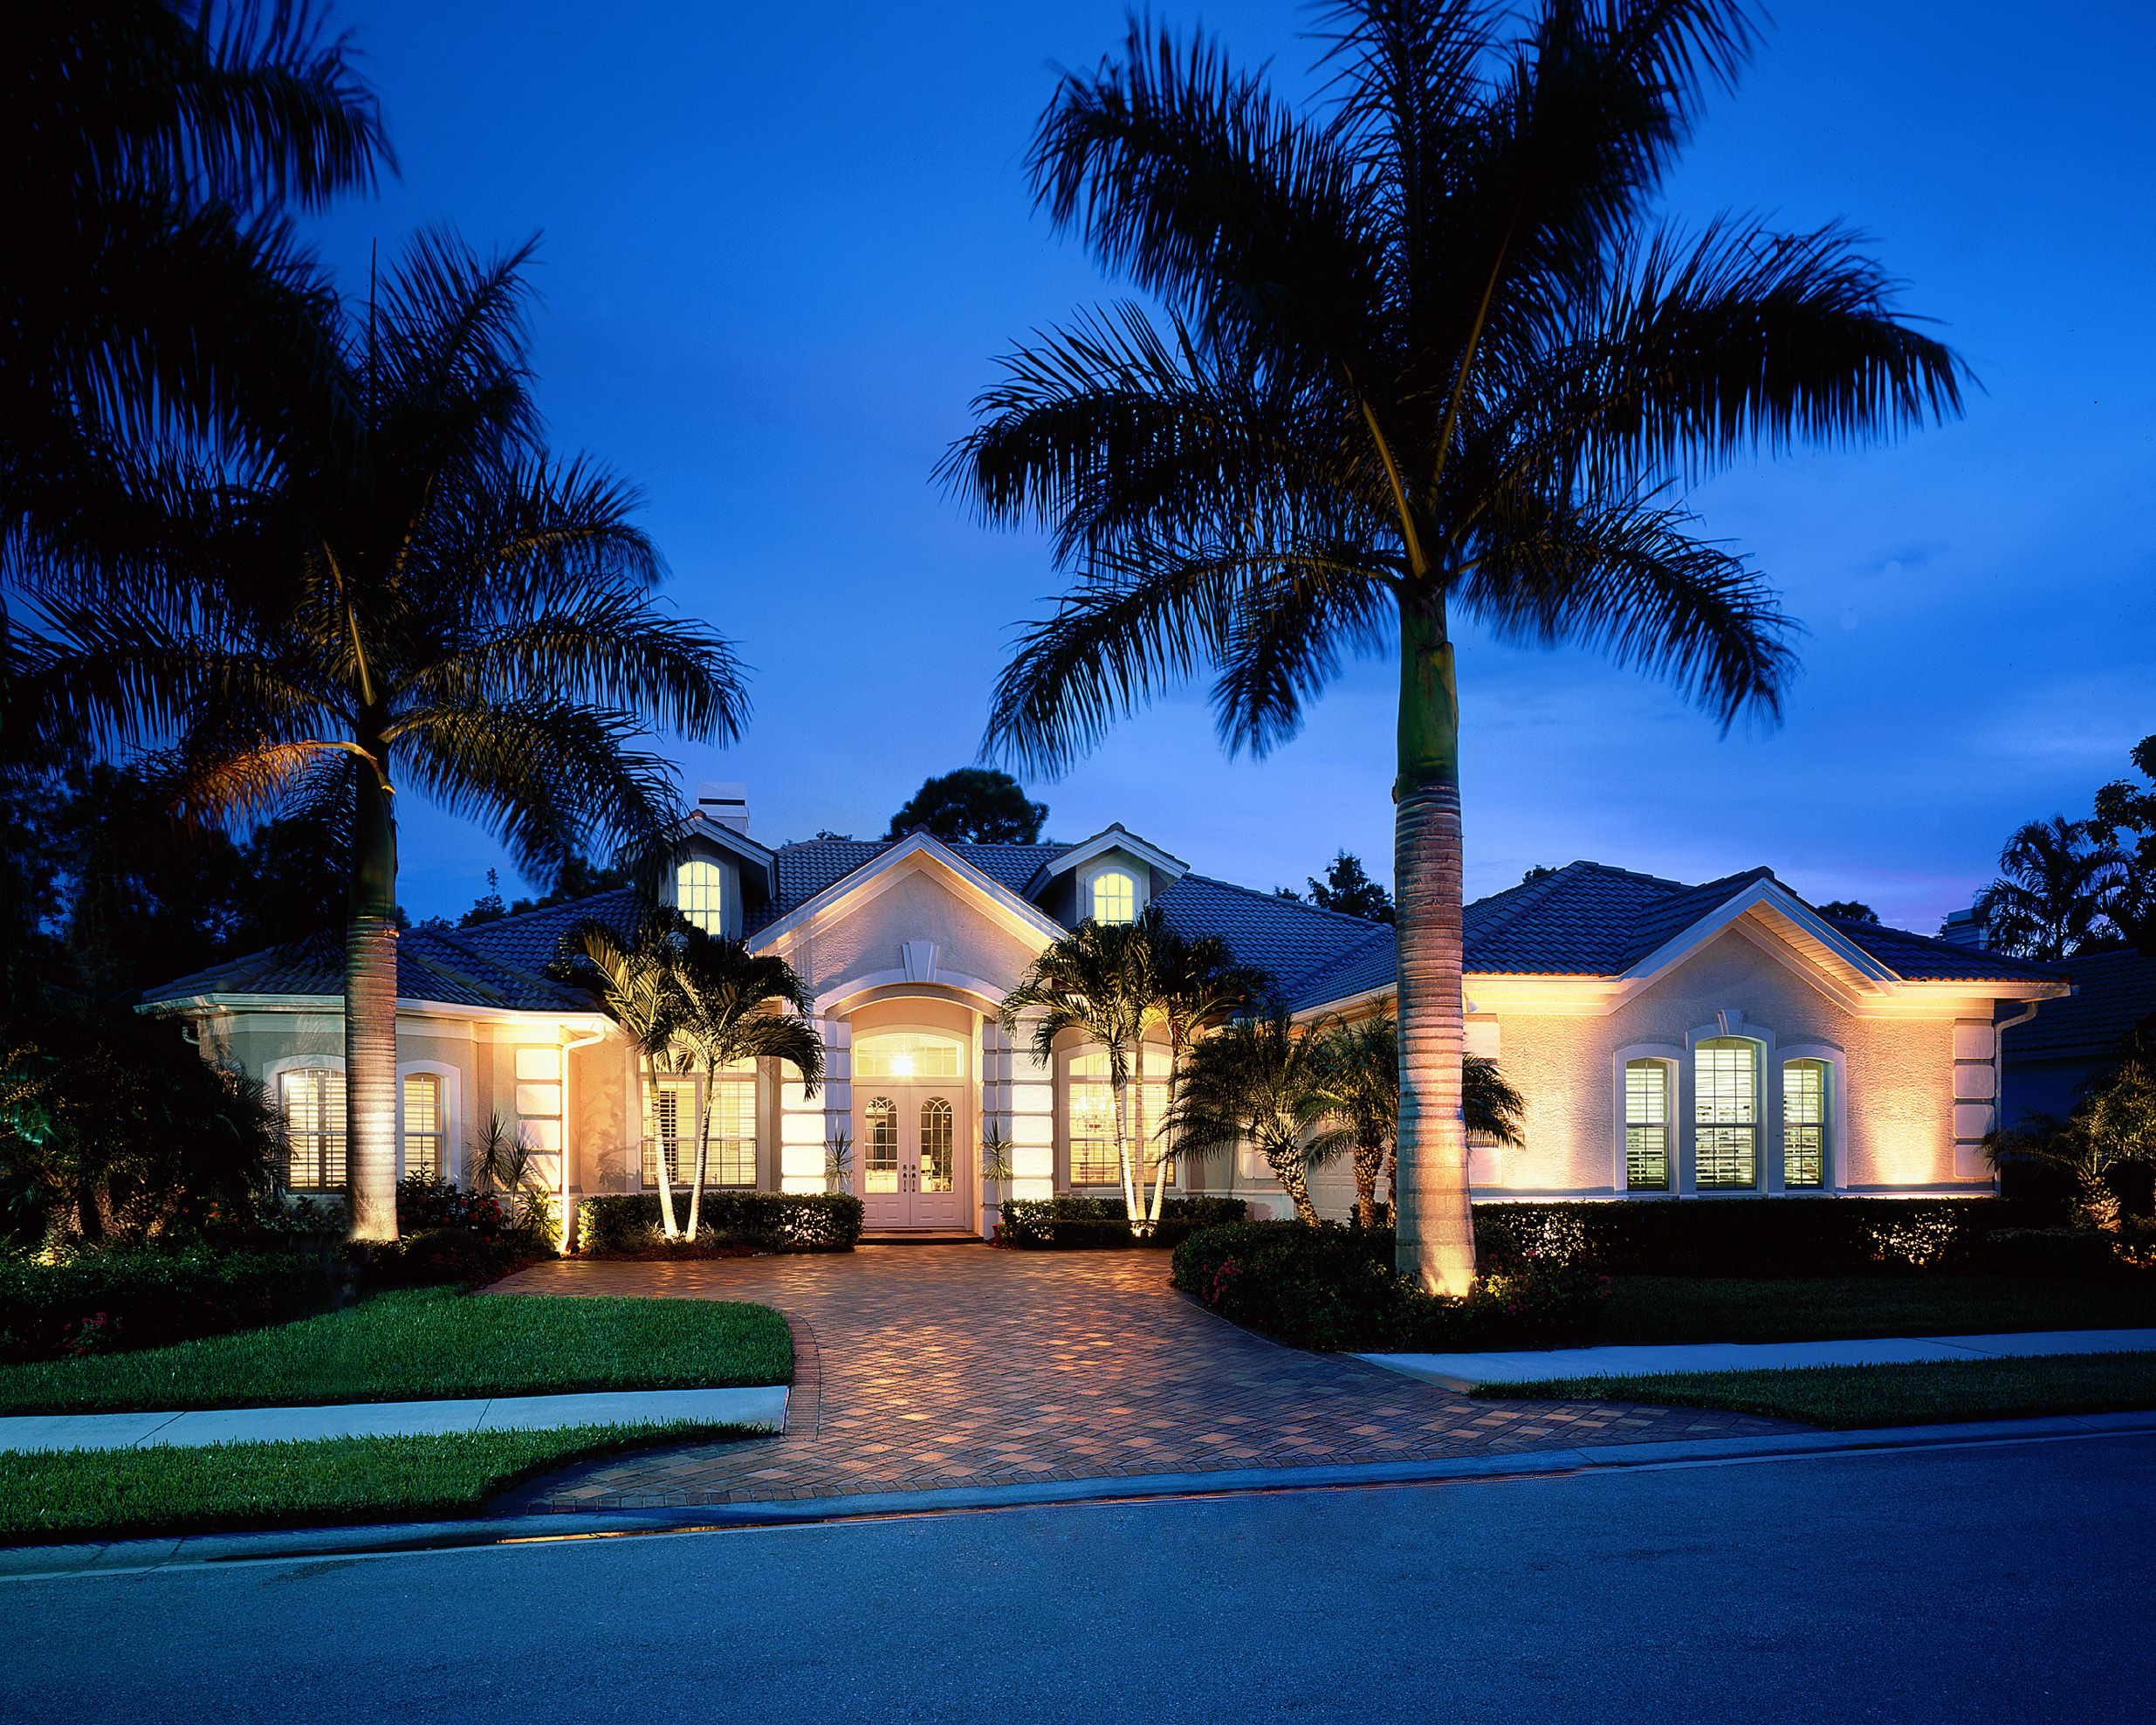 outdoor lighting perspective. Posts About How Professional Outdoor Lighting Can Enhance The Beauty Of Your San Antonio Home And Landscape On Perspectives Perspective O